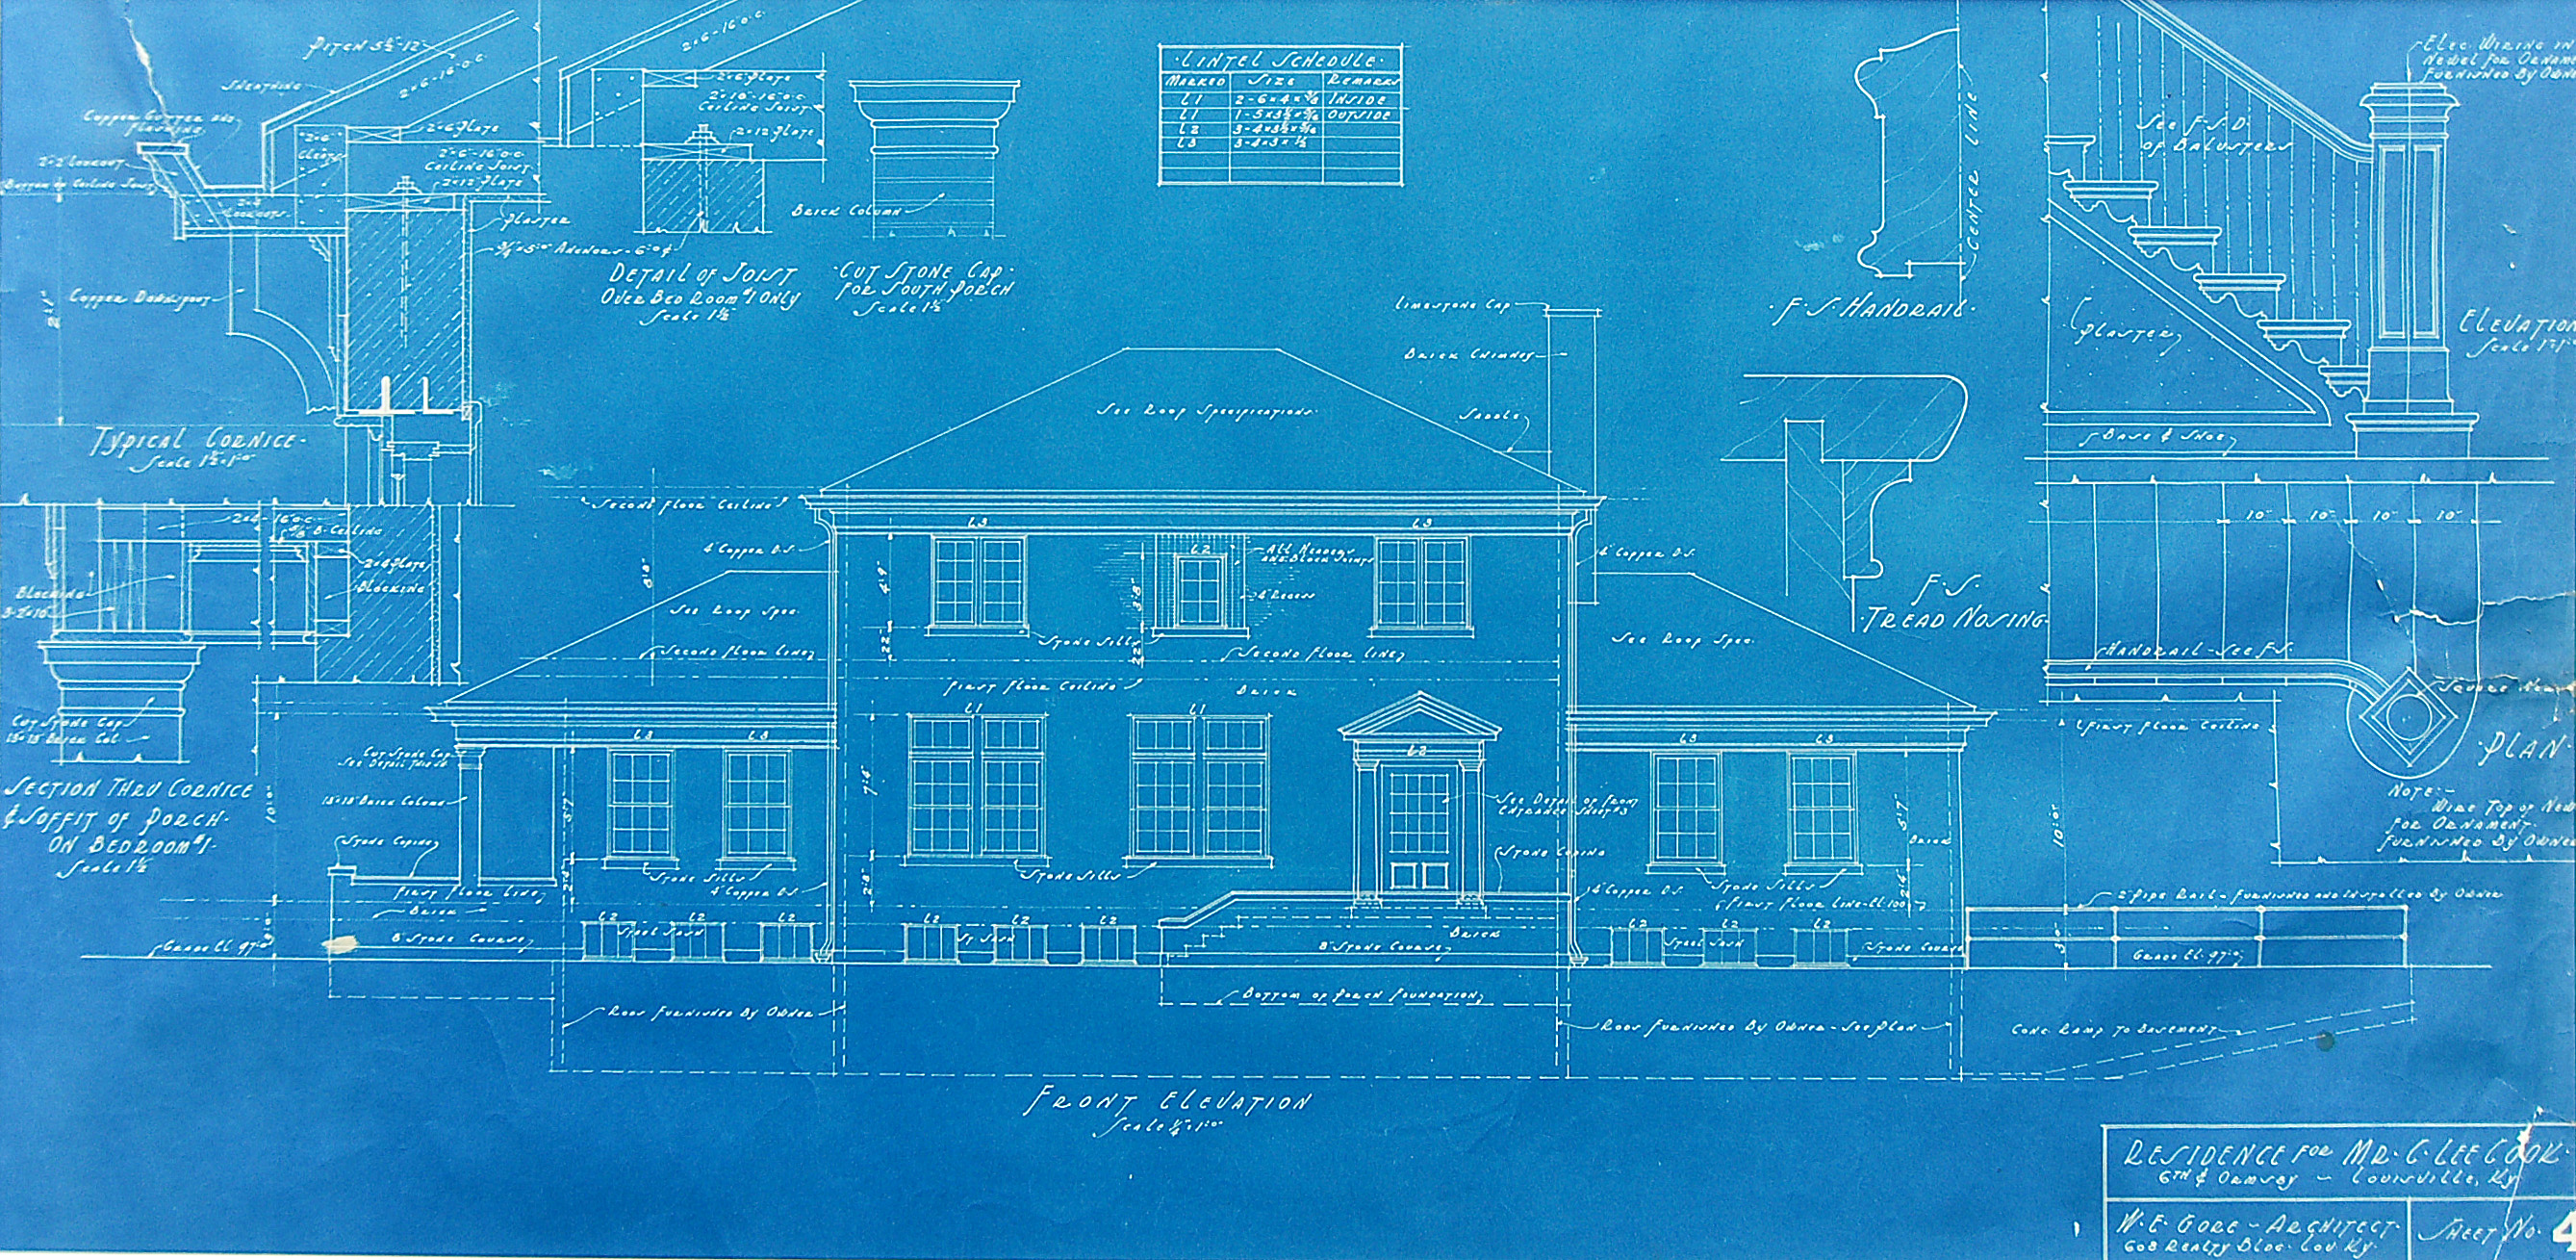 1244 Sixth Street The Blueprints